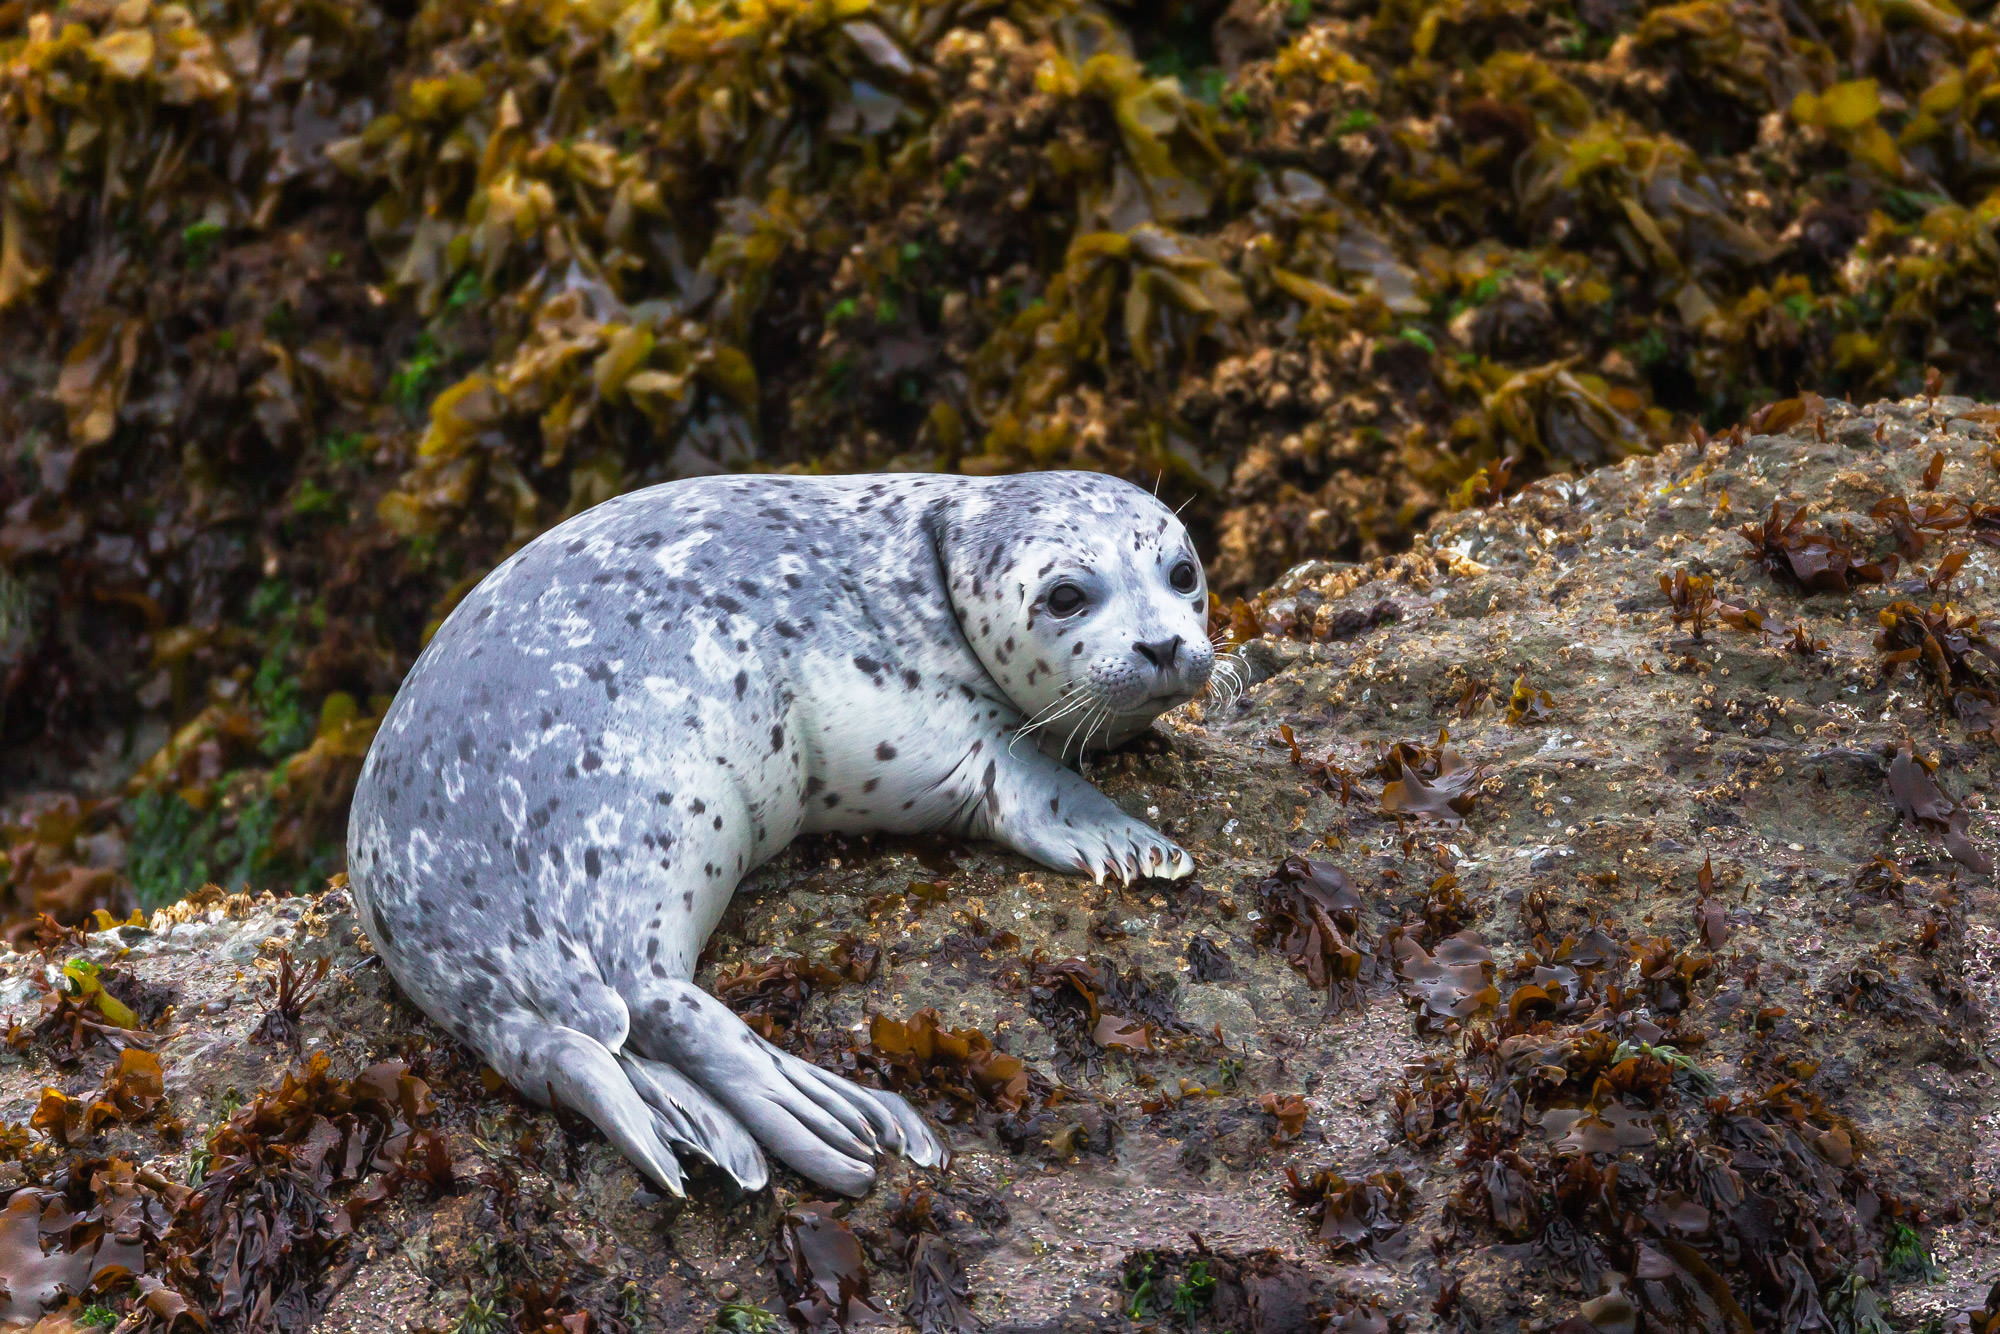 Seal, Harbor Seal, Oregon, Yaquina, limited edition, photograph, fine art, wildlife, photo